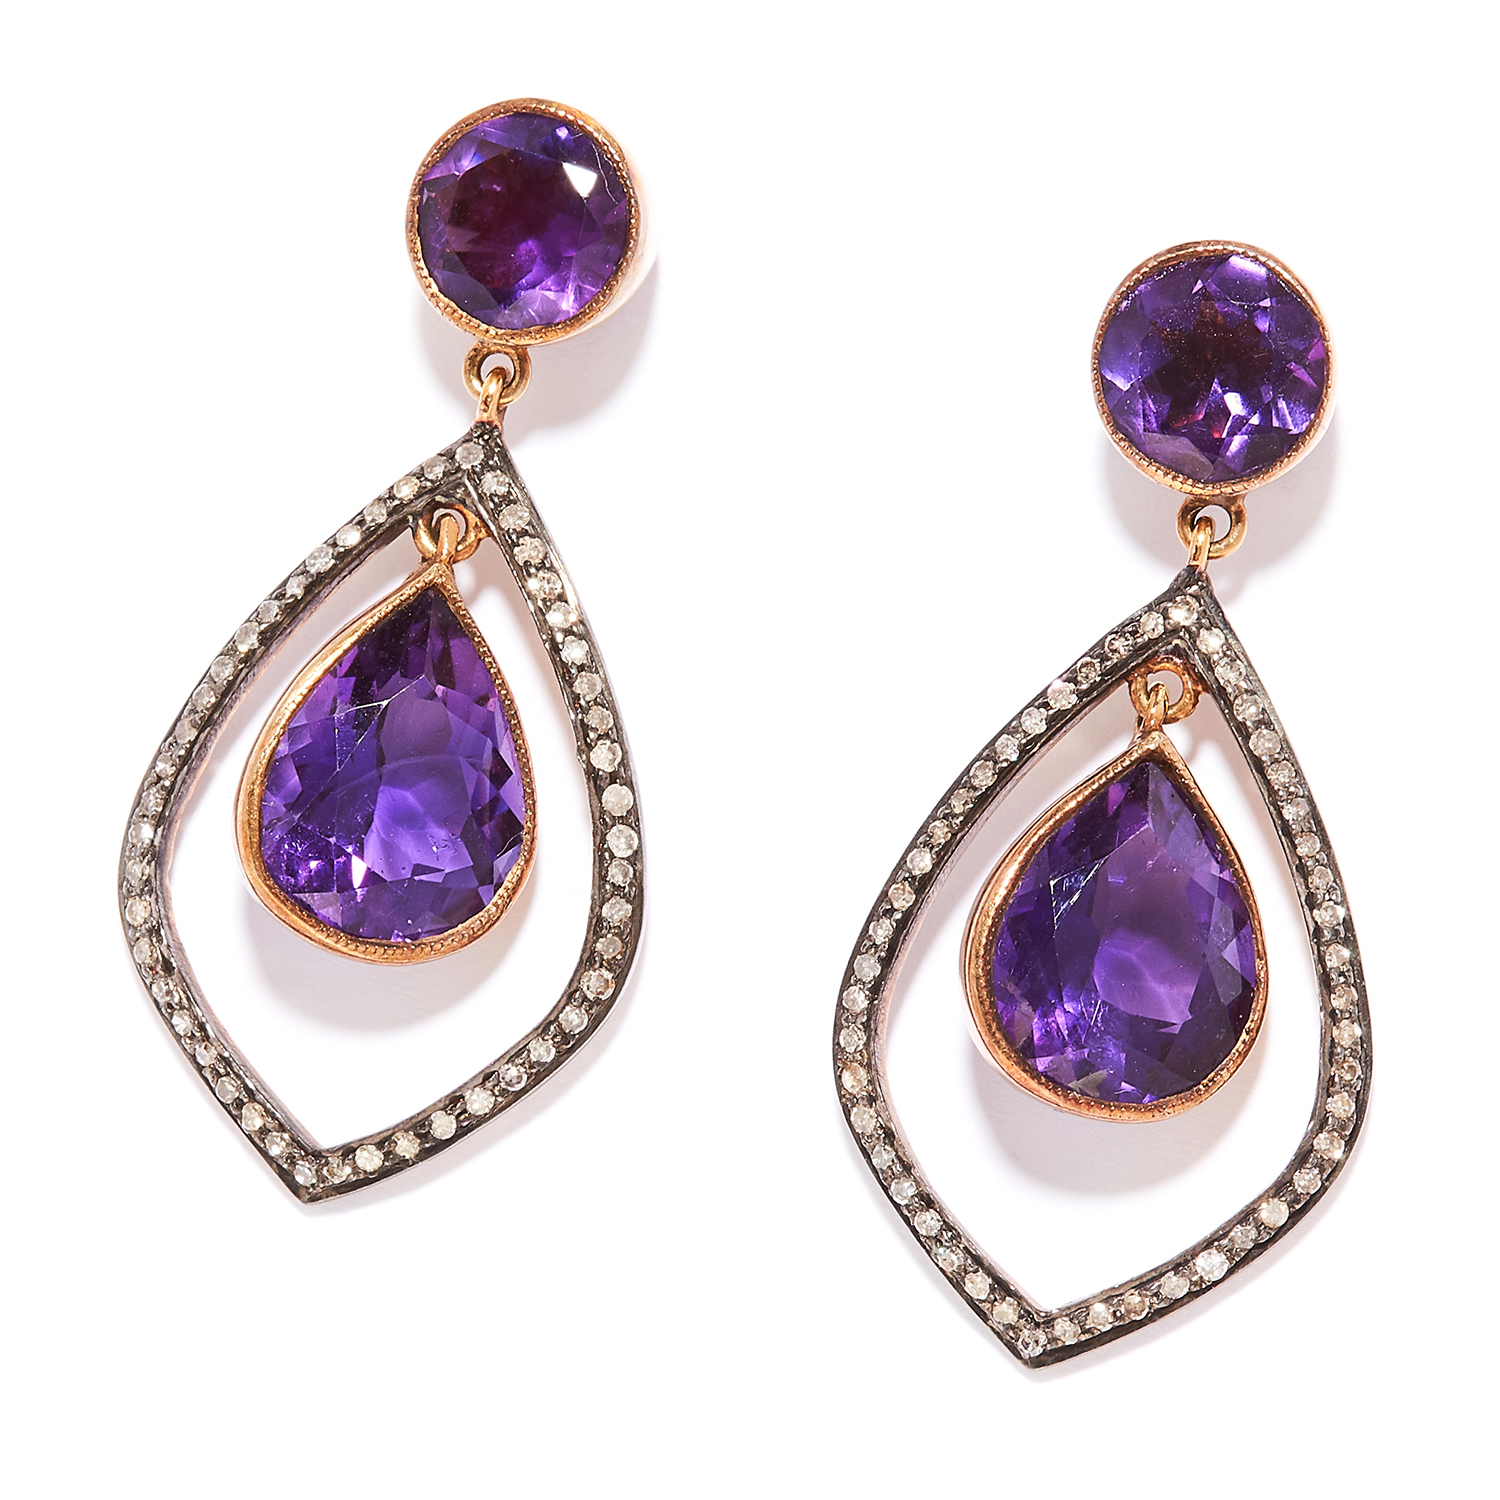 AMETHYST AND DIAMOND EARRINGS in silver and yellow gold, pear cut amethysts within diamond halos